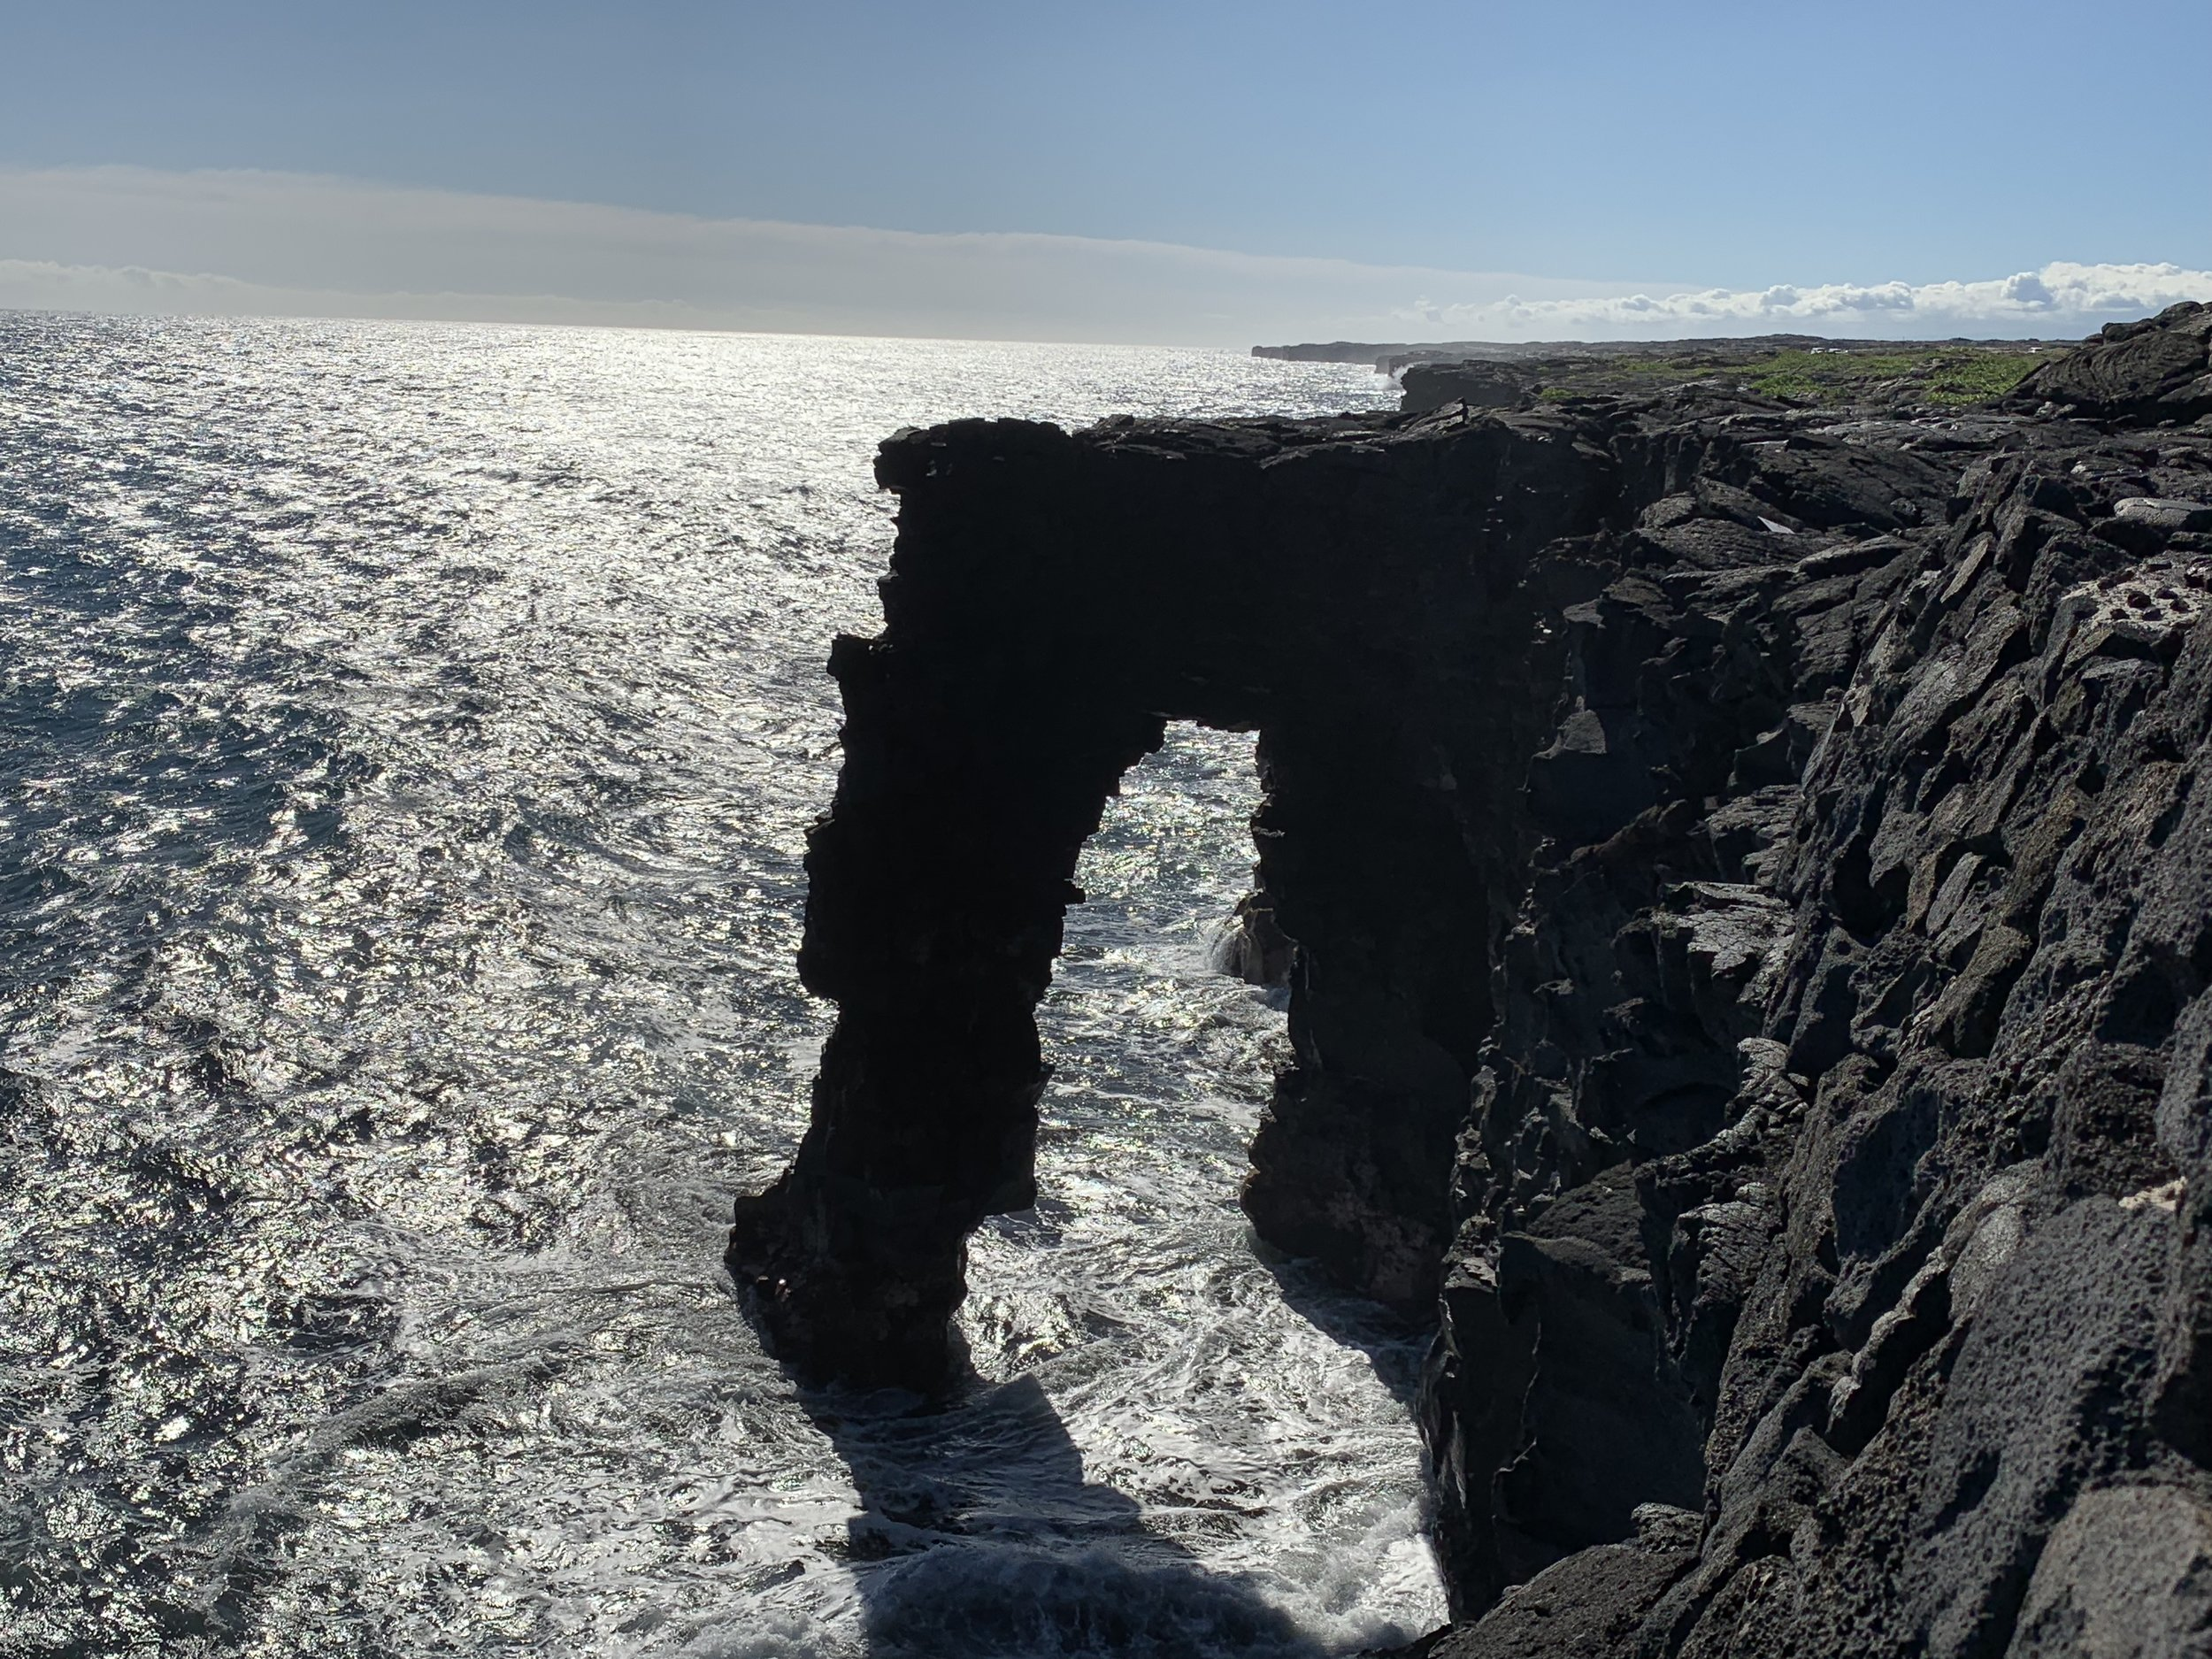 Chain of Craters Road ends at the Holēi Sea Arch—a lovely spot to watch the waves.